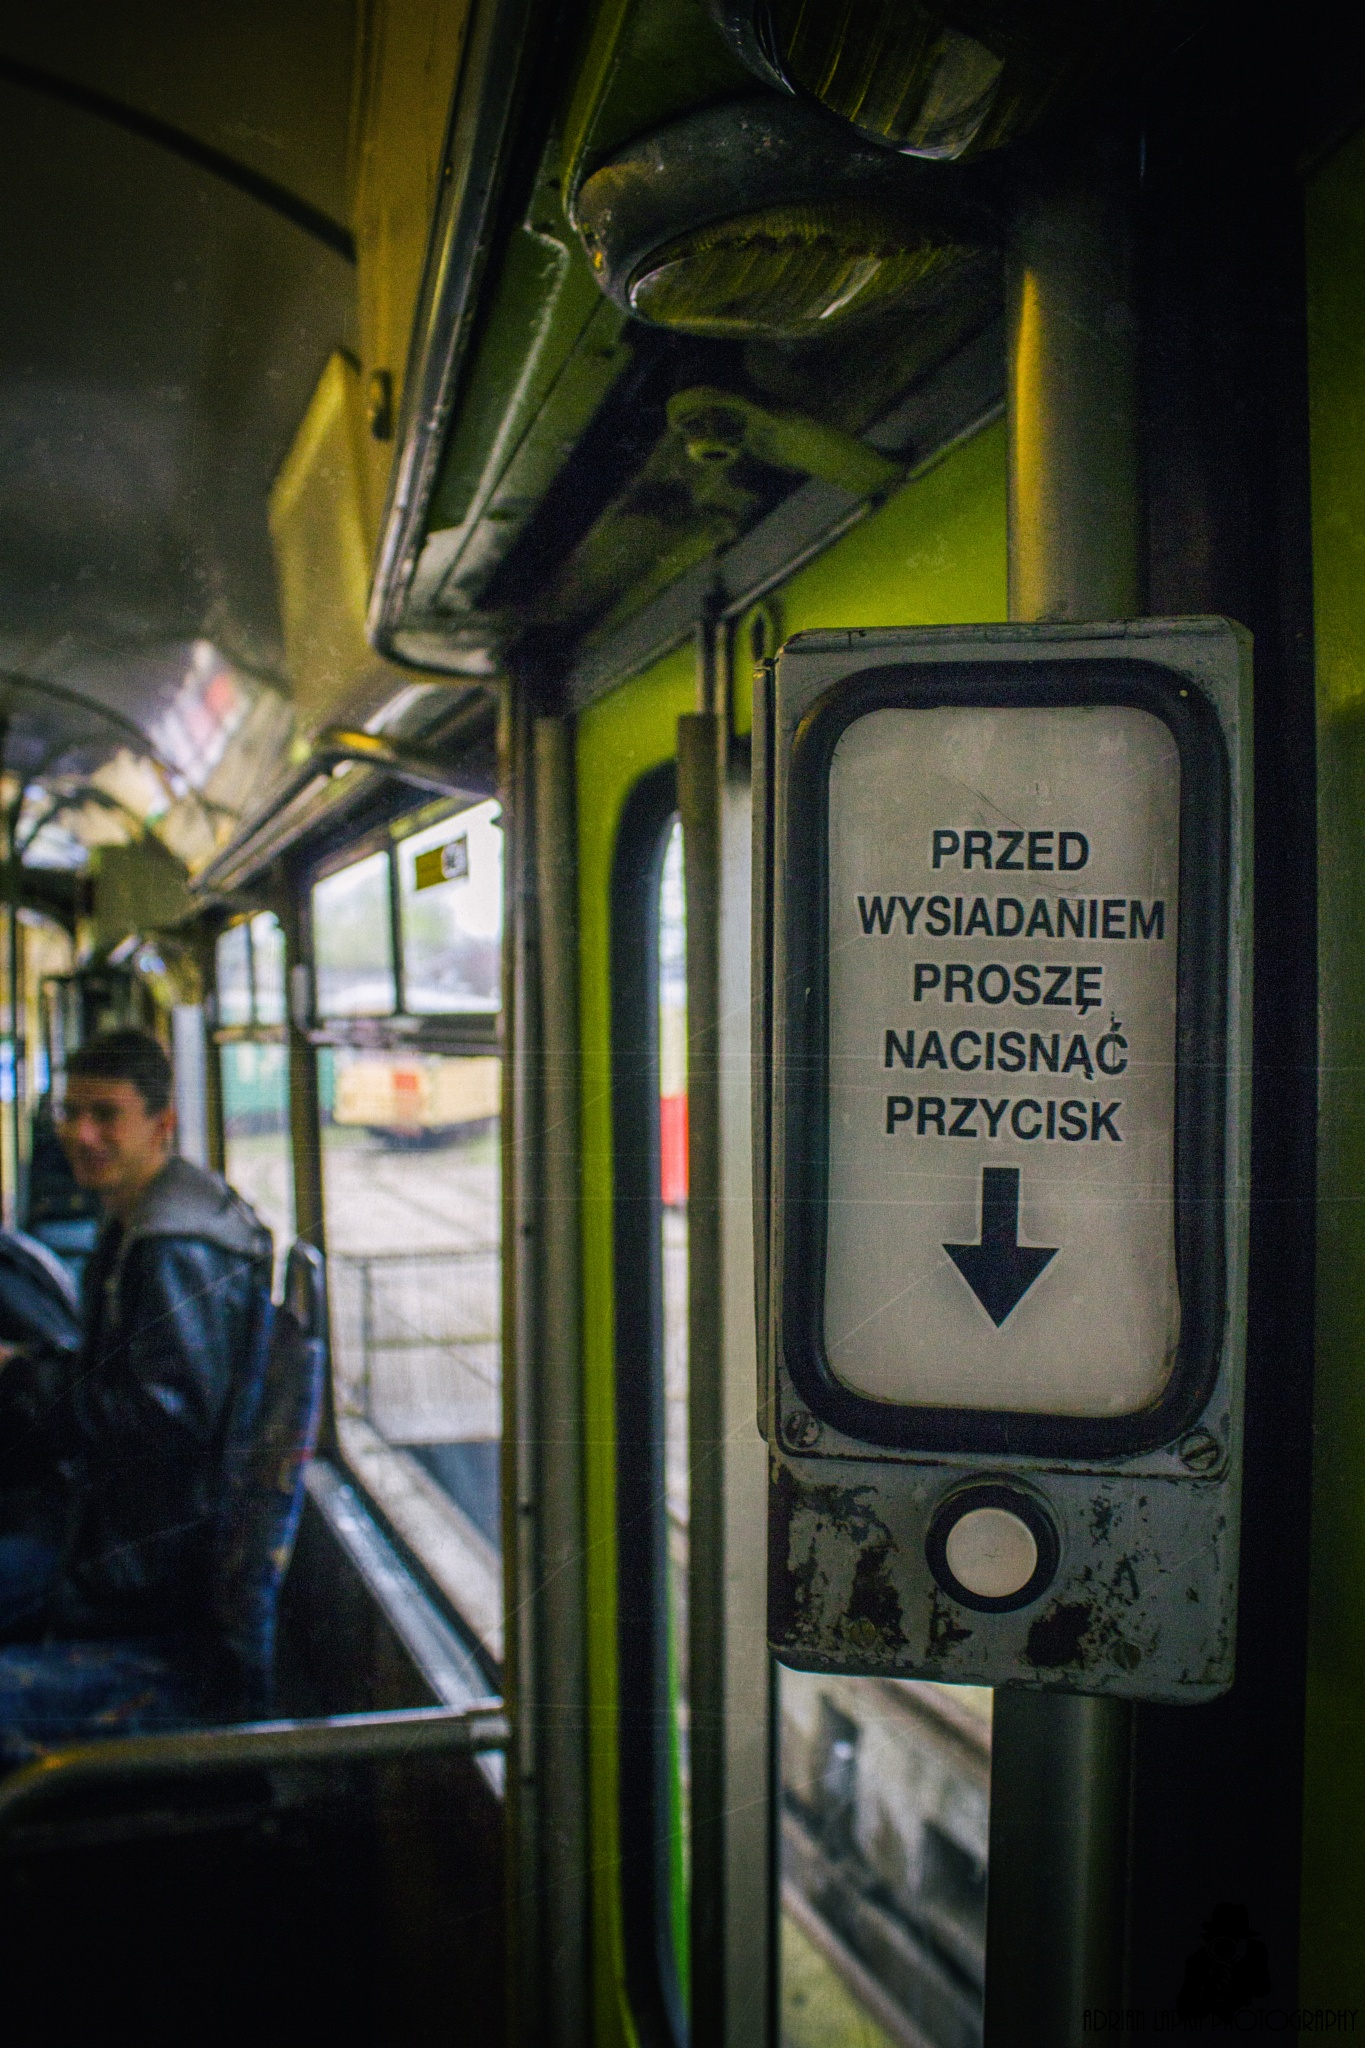 Please press by Public Transport Photography